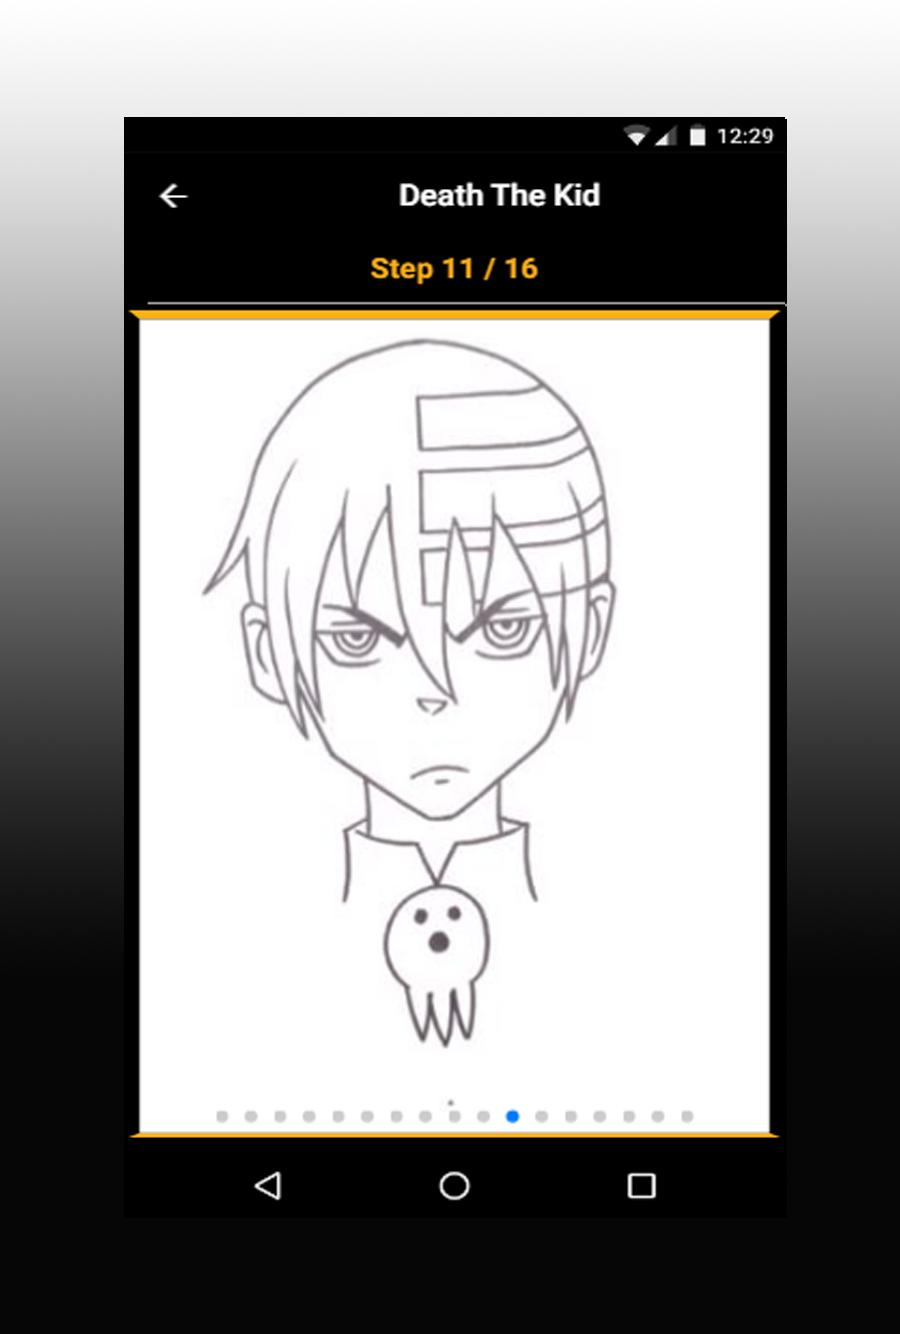 How To Draw Manga: Soul Eater characters for Android - APK ...